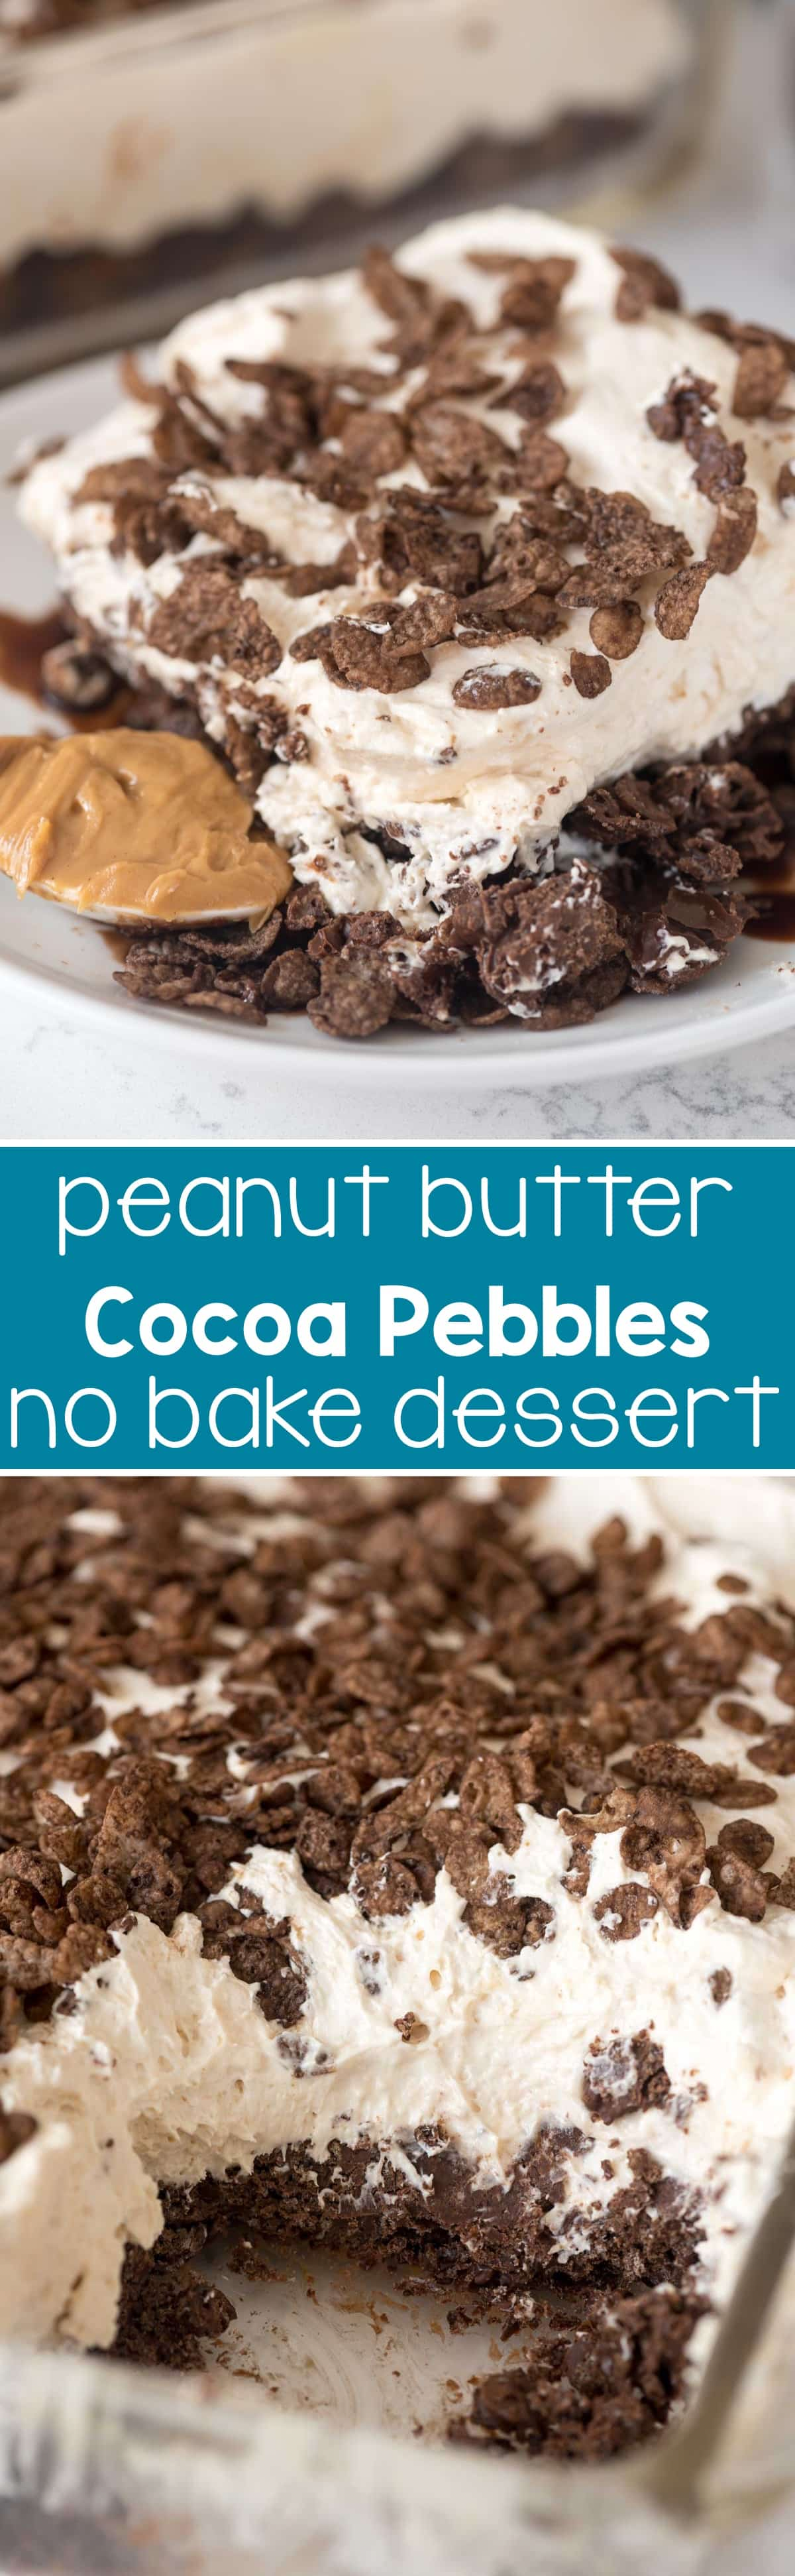 Cocoa Pebble No Bake Dessert - an EASY peanut butter cheesecake on top a cocoa pebble crust. This no bake dessert is the BEST recipe!